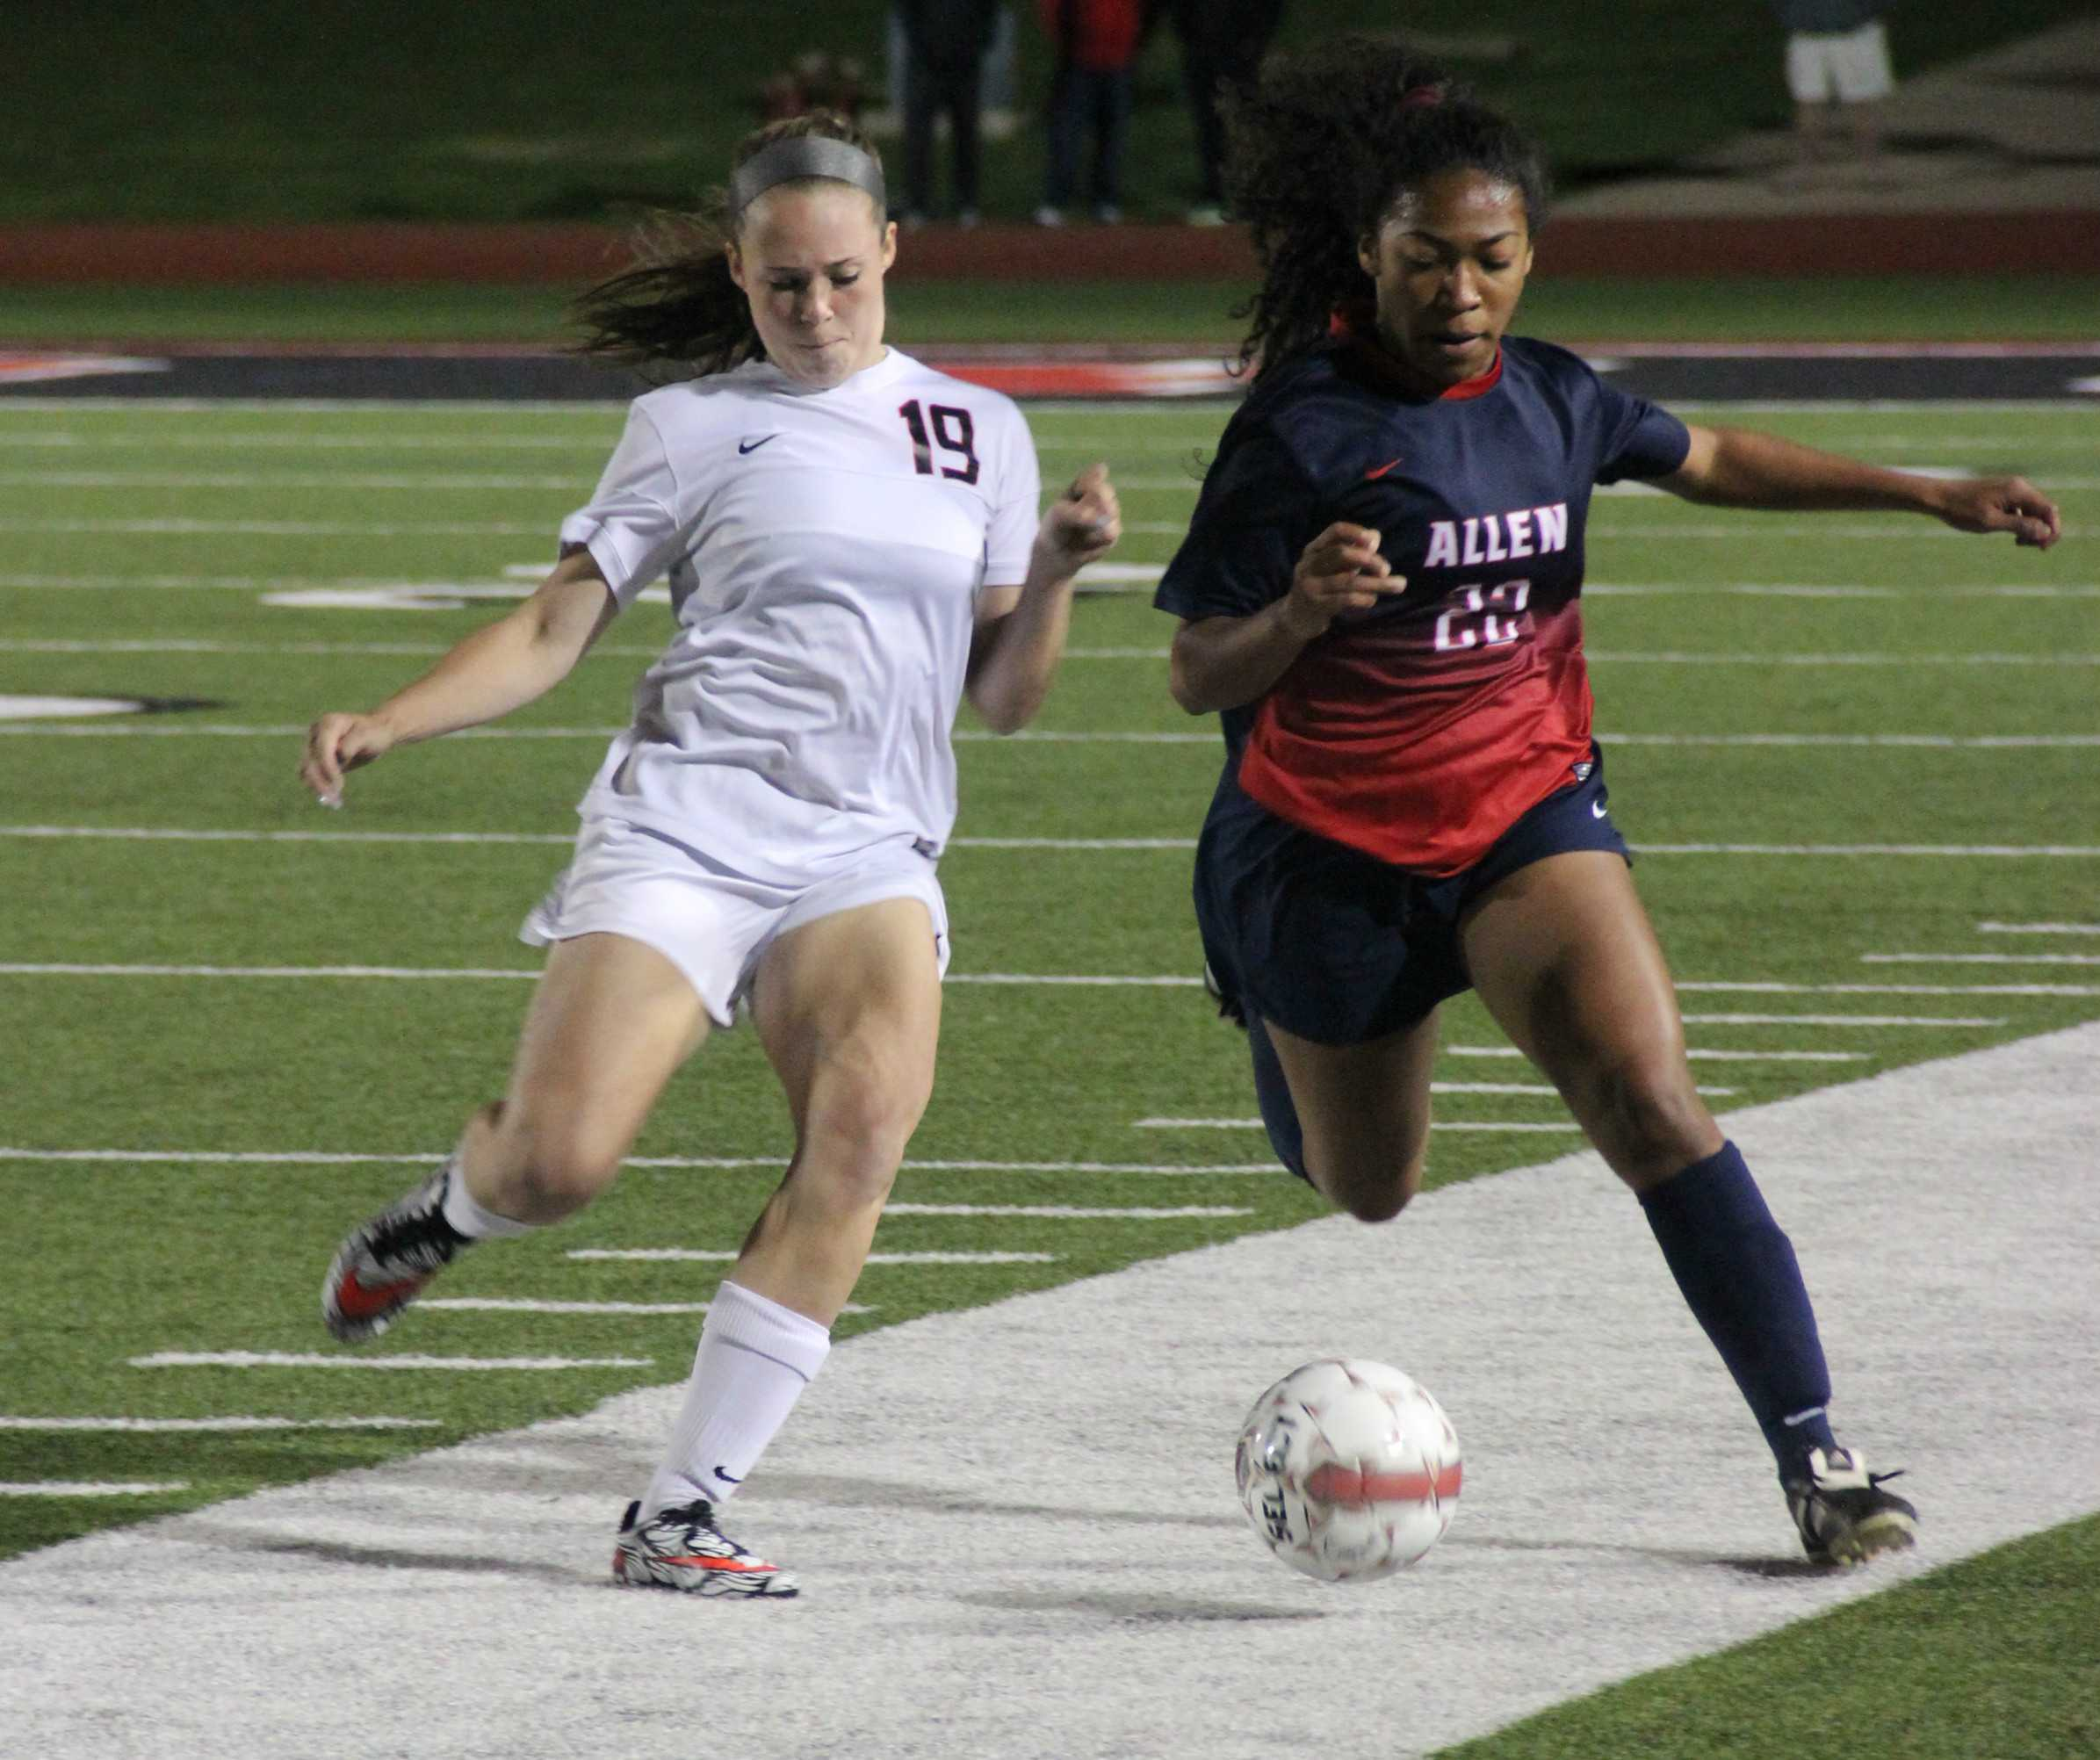 Coppell High School junior Baylee Hux tries to keep the ball from Allen player during the first half. The Cowgirls lost to the Lady Eagles on Friday night at Buddy Echols Field with a final score of 2-3. Photo by Megan Winkle.